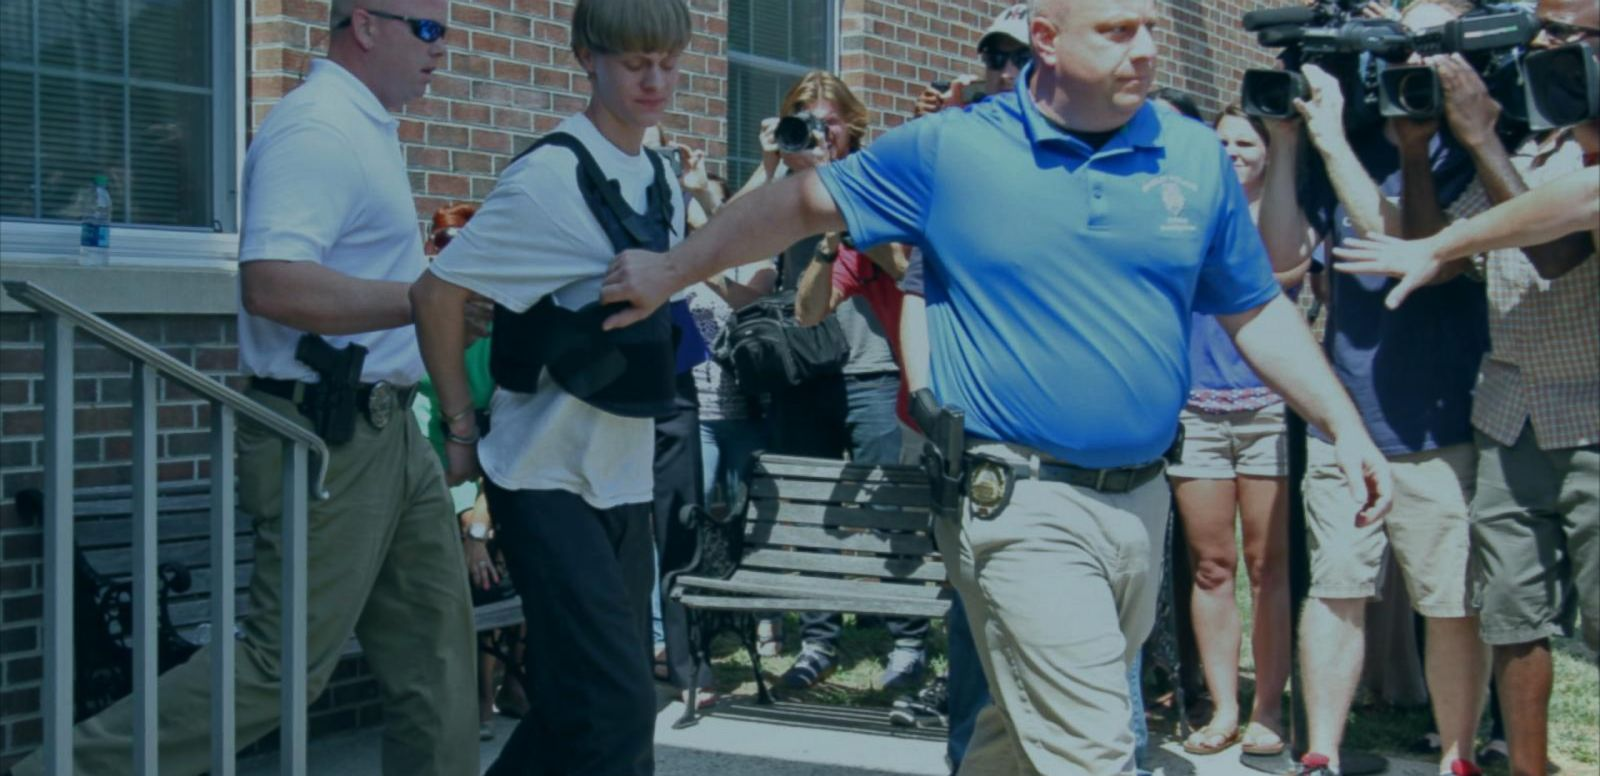 VIDEO: Charleston Church Shooting: A Timeline